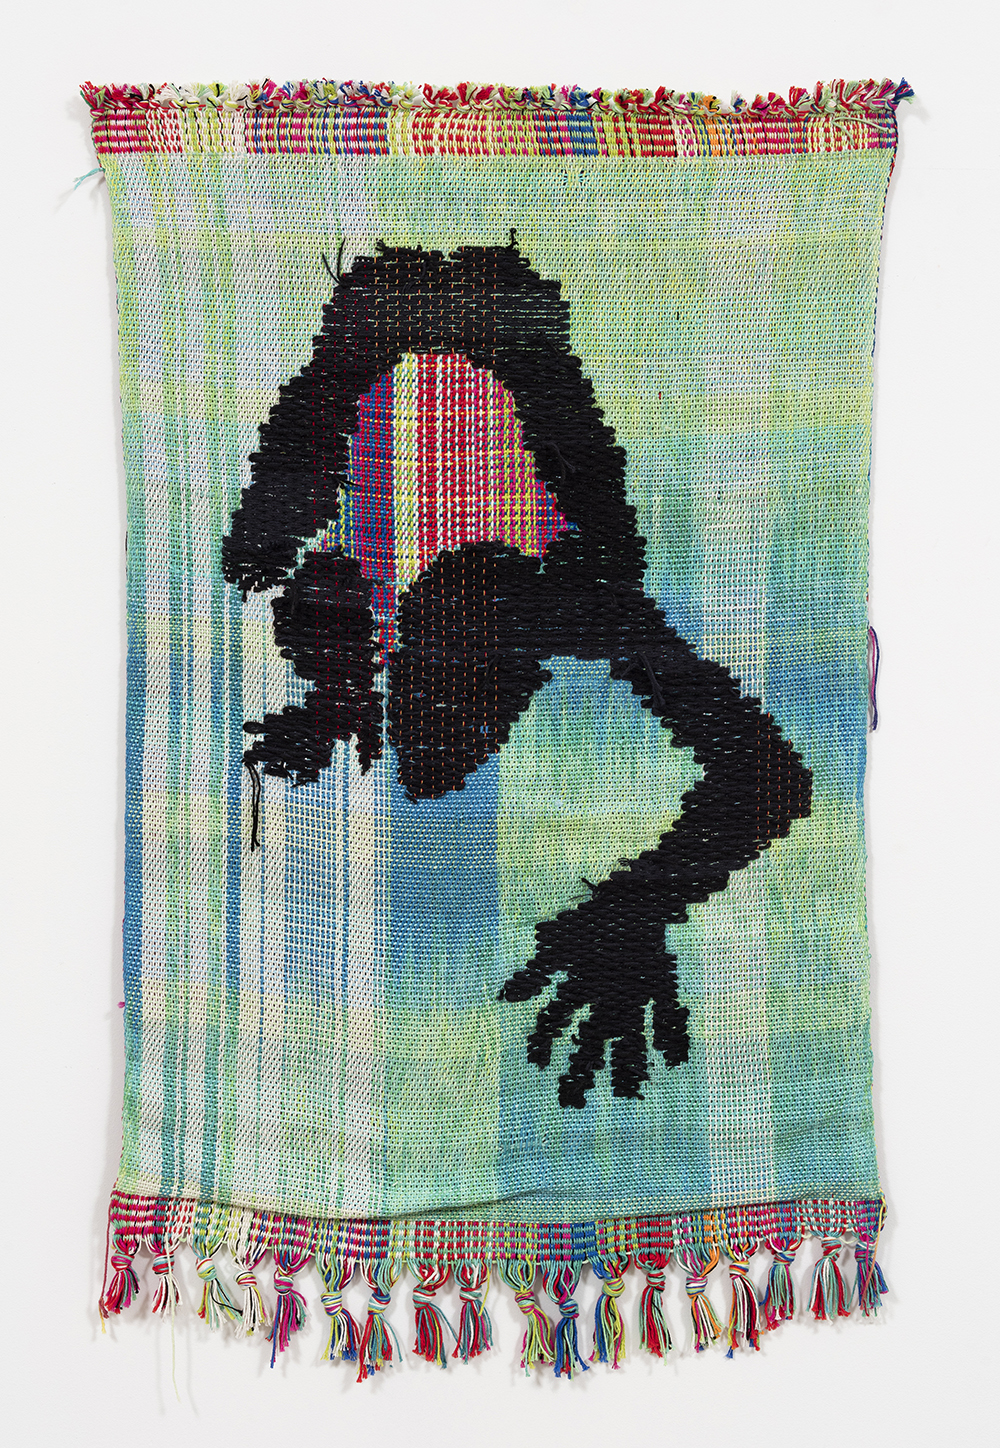 Diedrick Brackens. <em>In the Valley</em>, 2017. Cotton and acrylic yarn, 52 x 32 inches (132.1 x 81.3 cm).